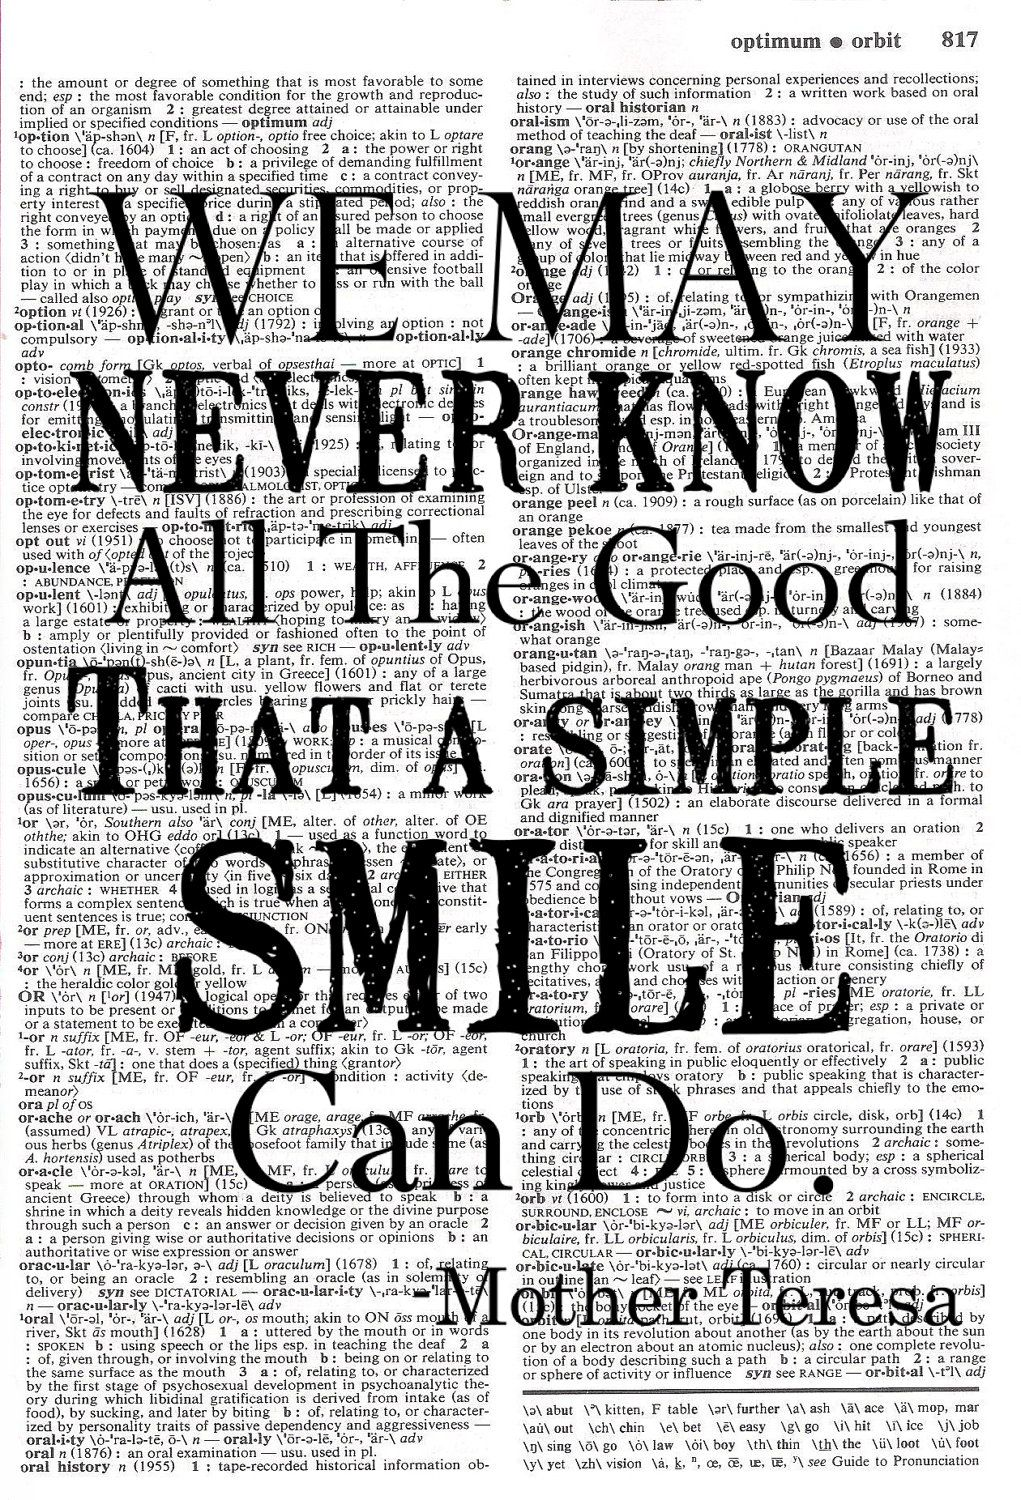 We May Never Know All The Good That A Simple Smile Can Do